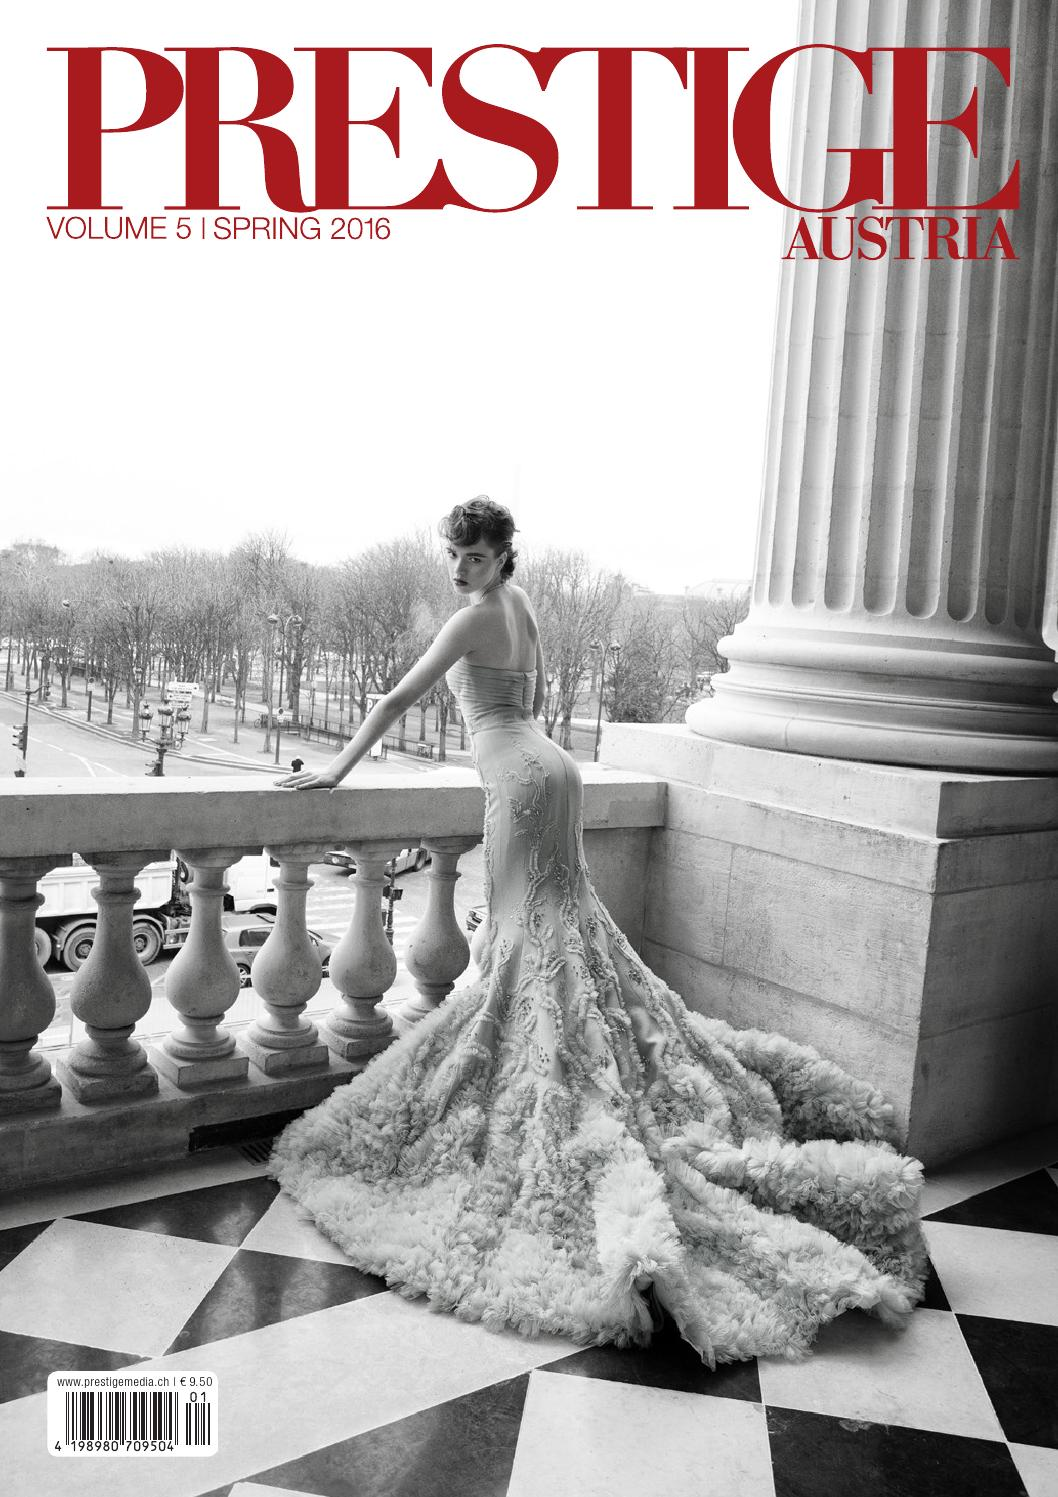 Prestige Austria Volume 5 By Editorial Ag Issuu